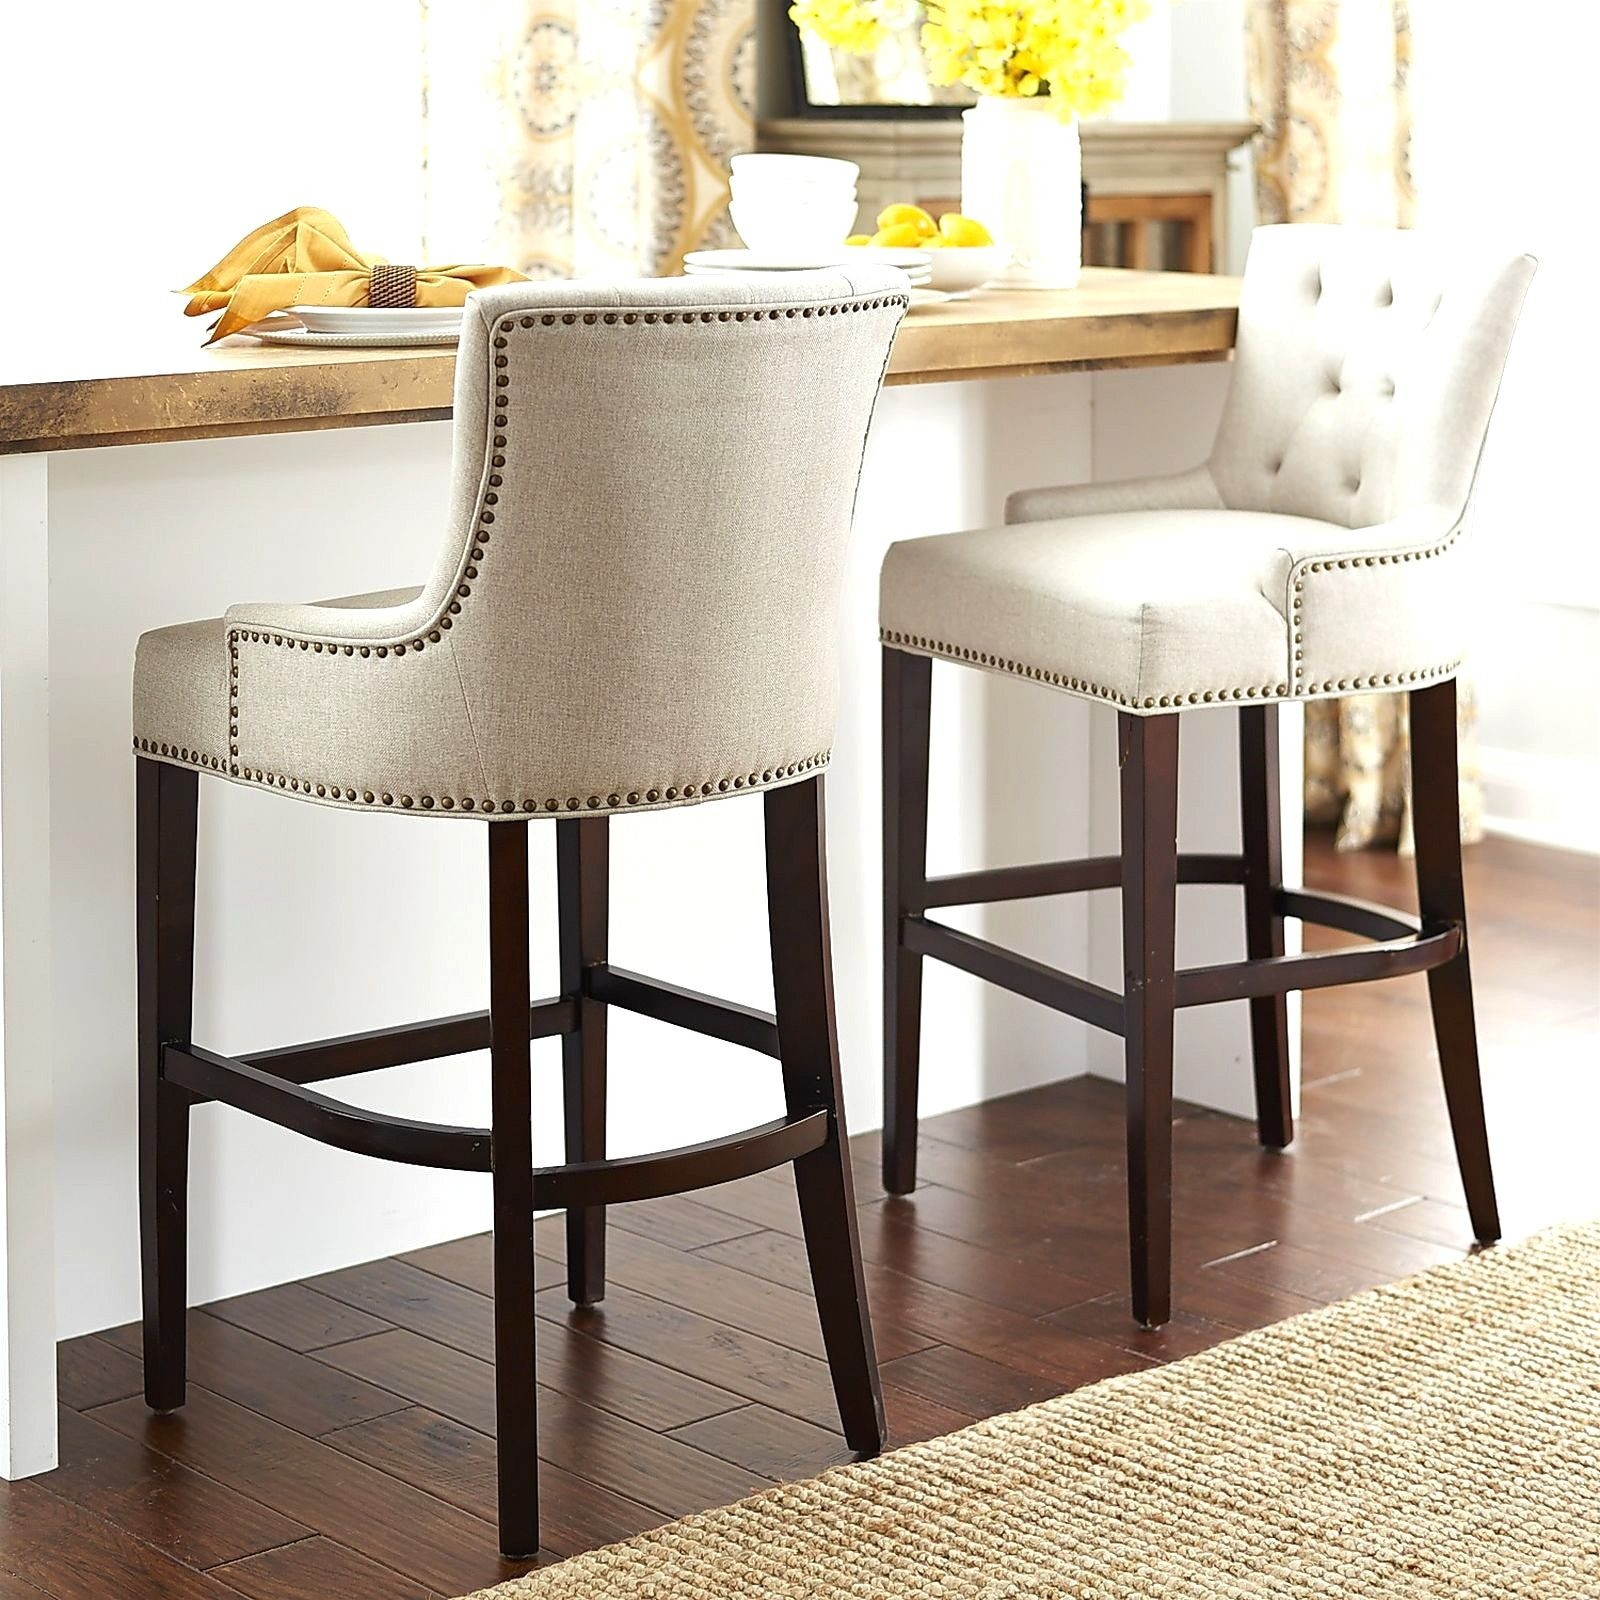 25+ Best Ideas About Kitchen Counter Stools On Pinterest .